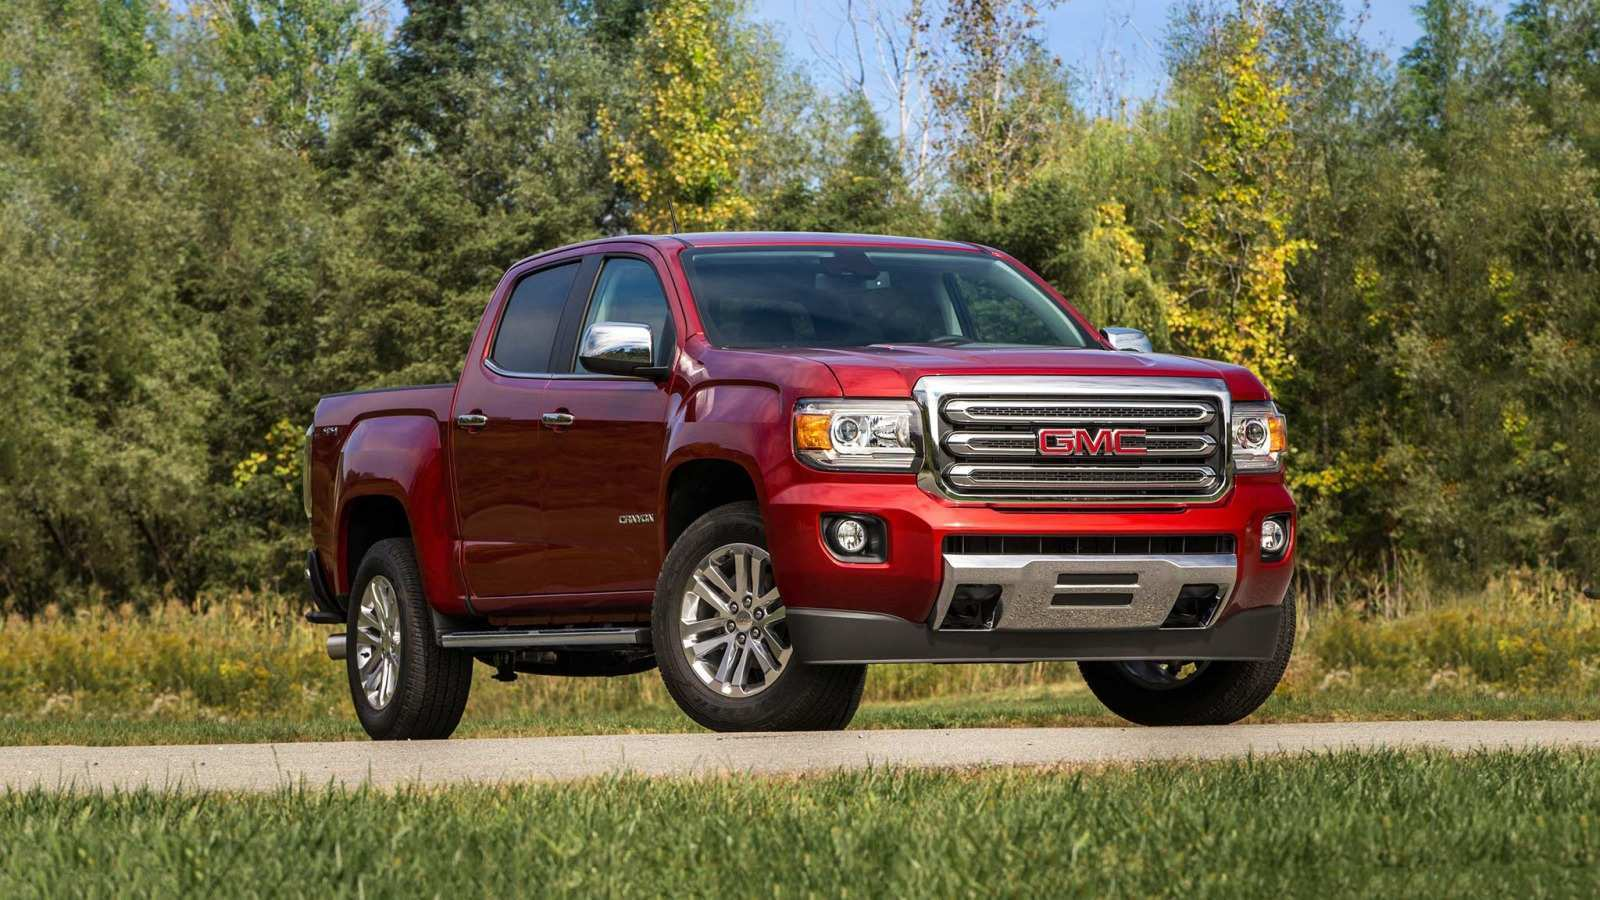 78 All New 2019 Gmc Canyon Diesel Concept and Review